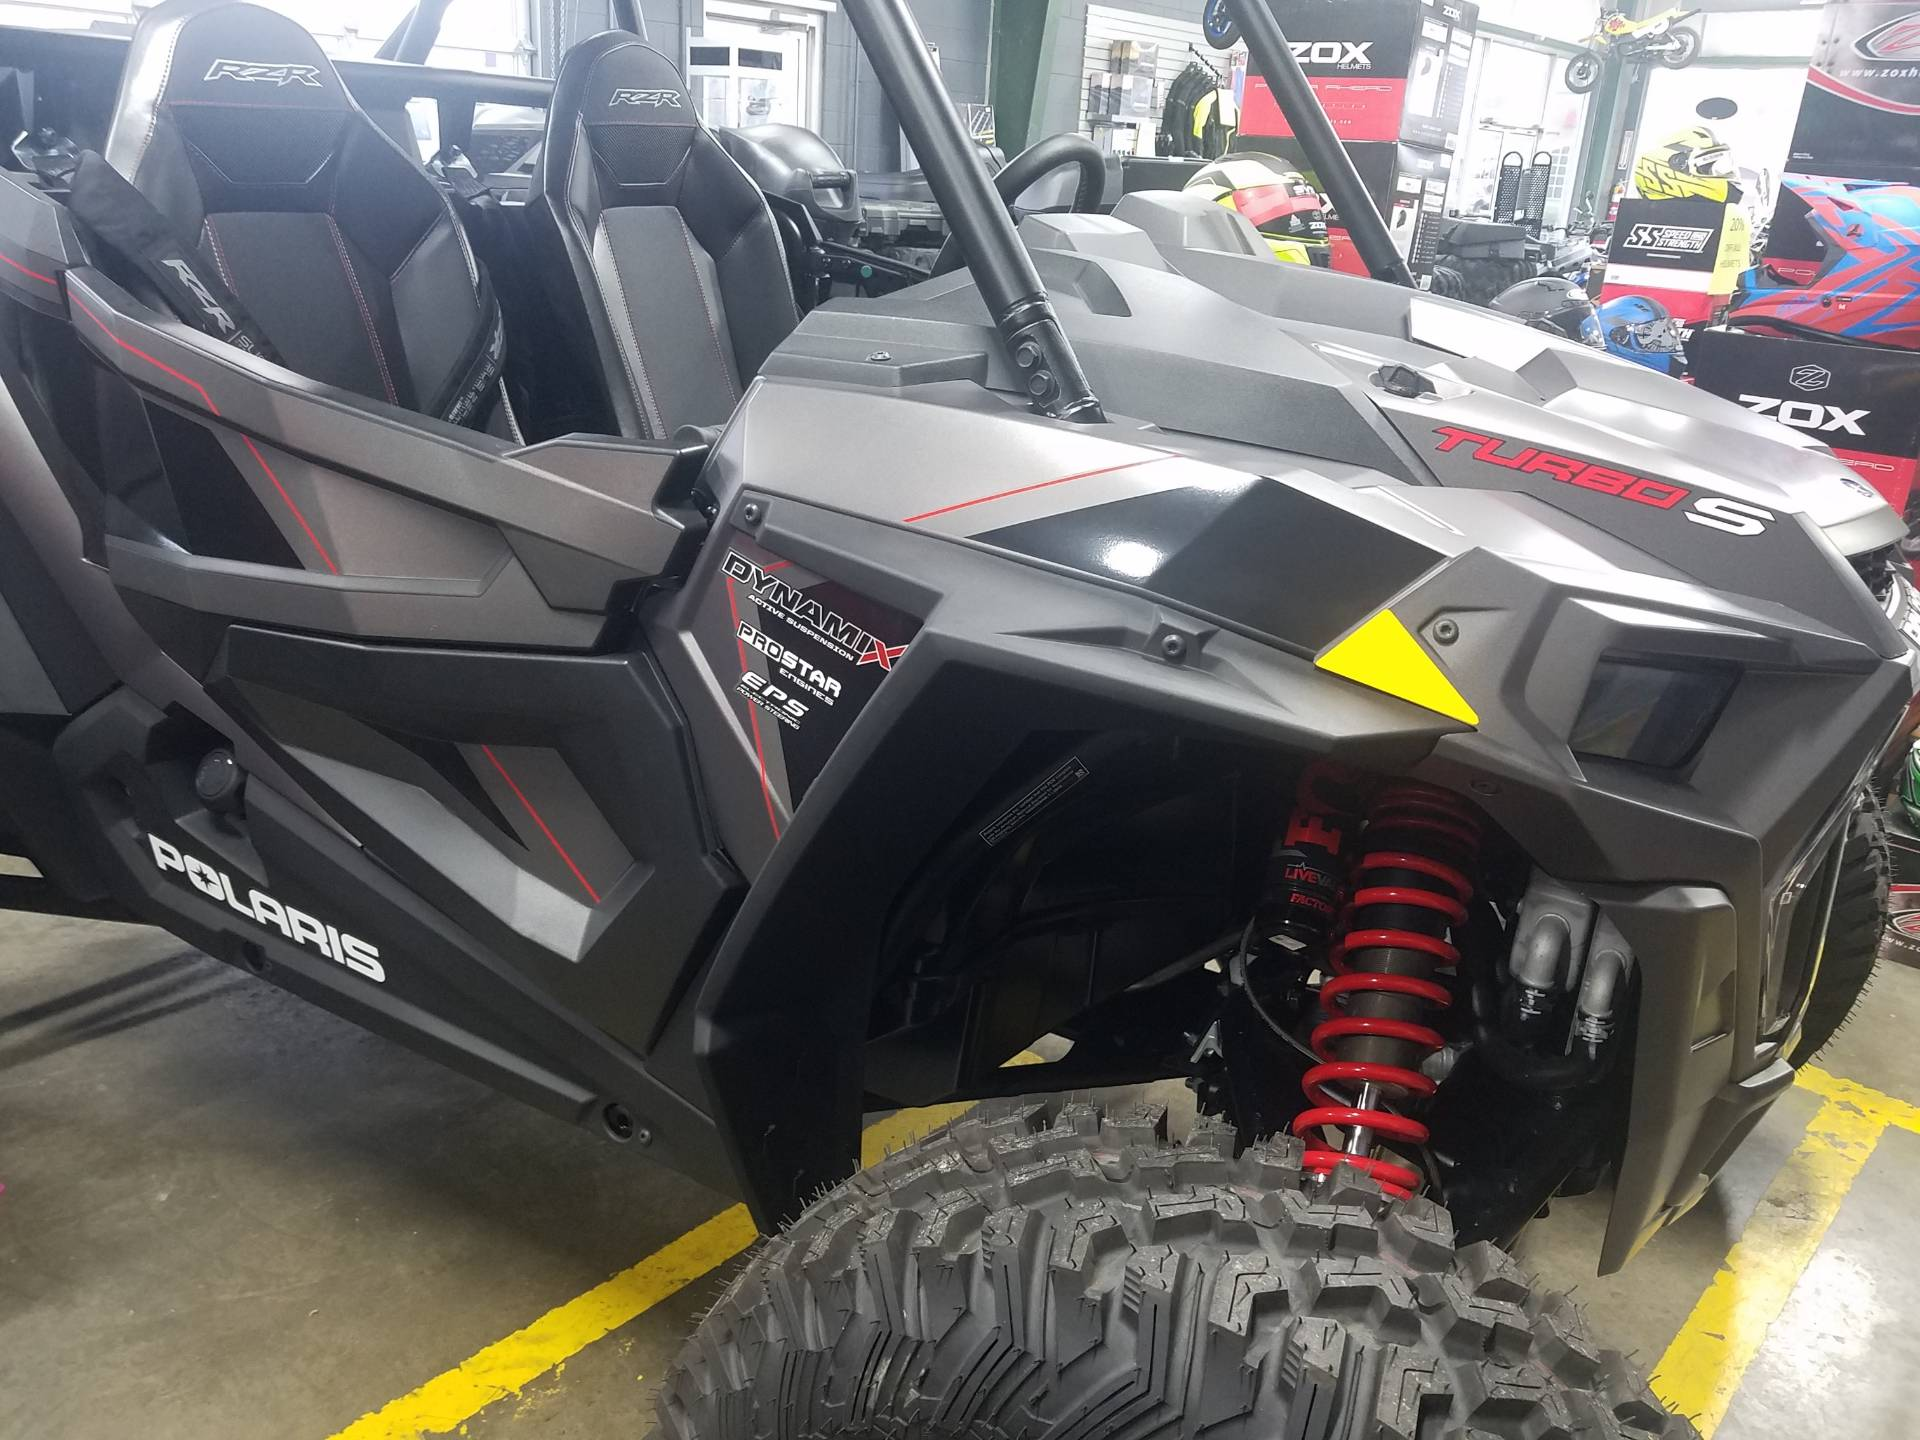 2019 Polaris RZR XP Turbo S in Albemarle, North Carolina - Photo 11